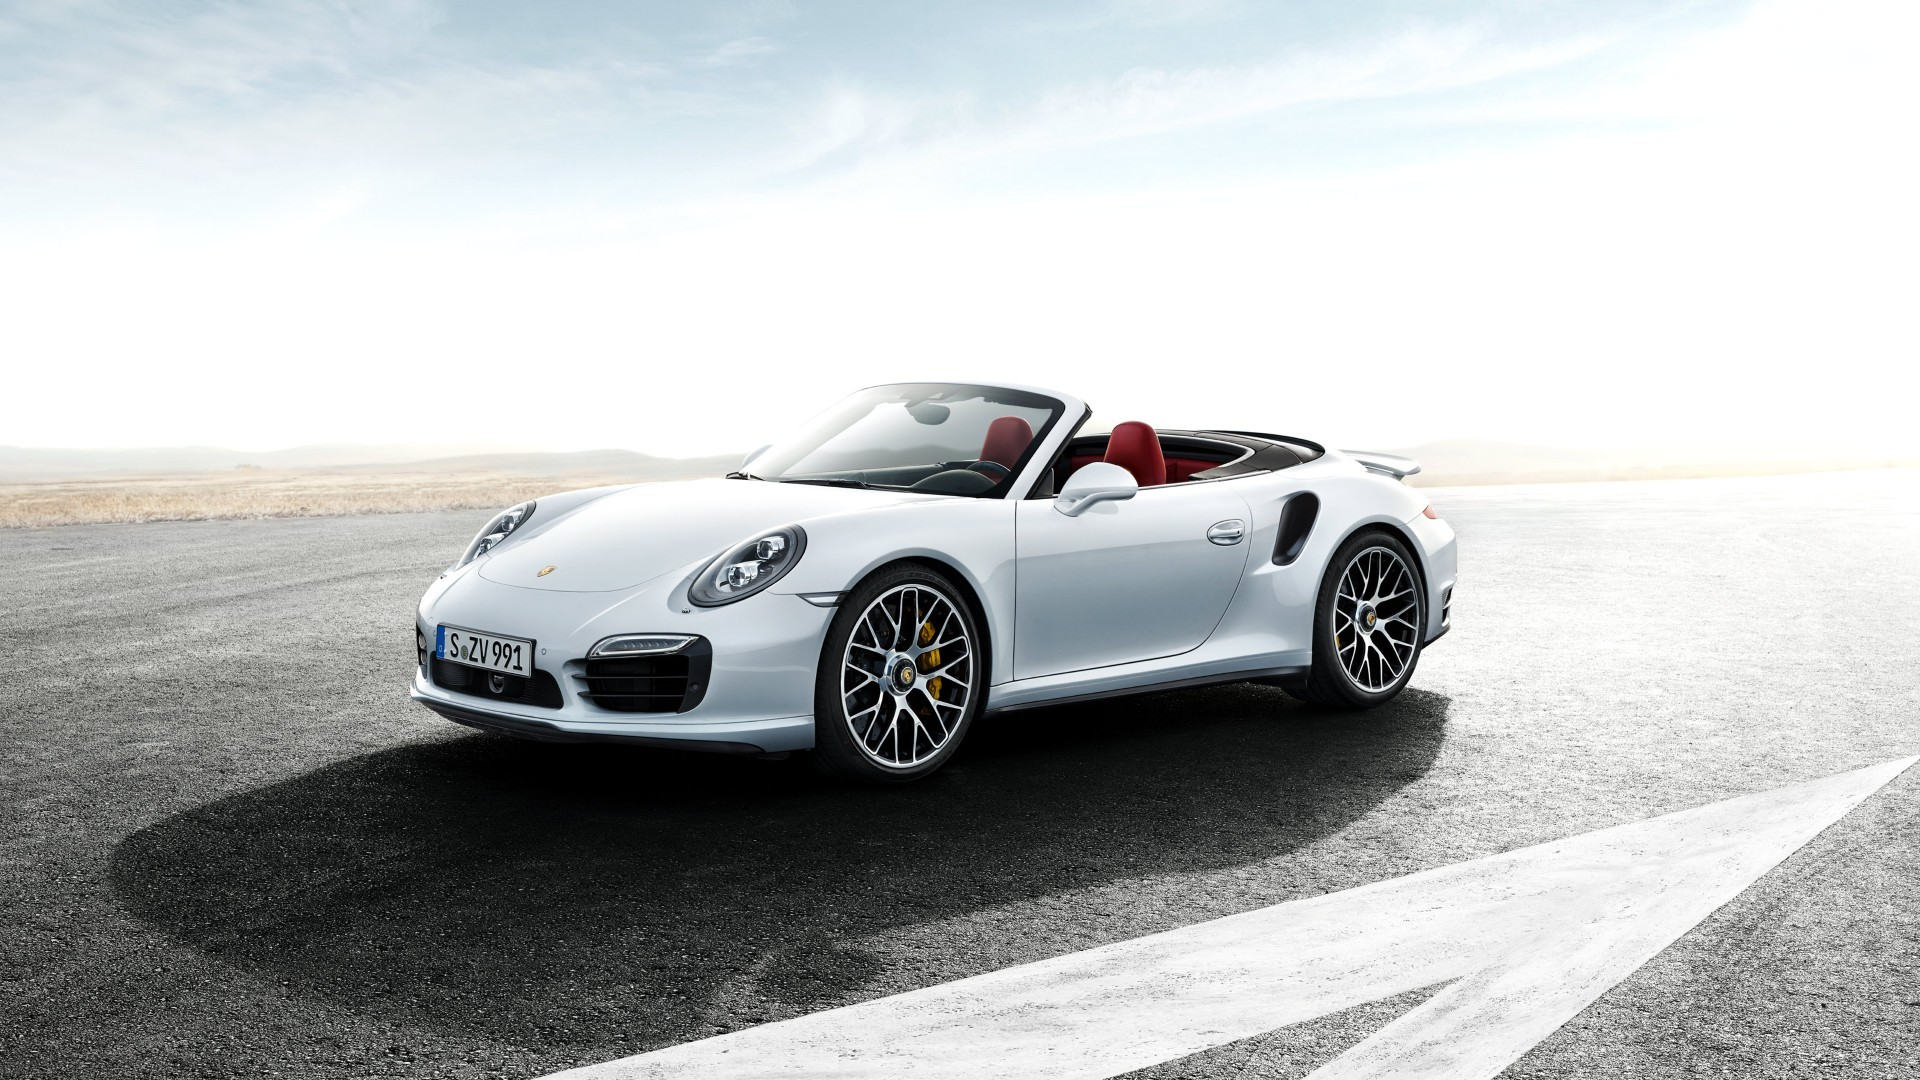 porsche 911 turbo s cabriolet 991 specs 2013 2014 2015 2016 autoevolution. Black Bedroom Furniture Sets. Home Design Ideas